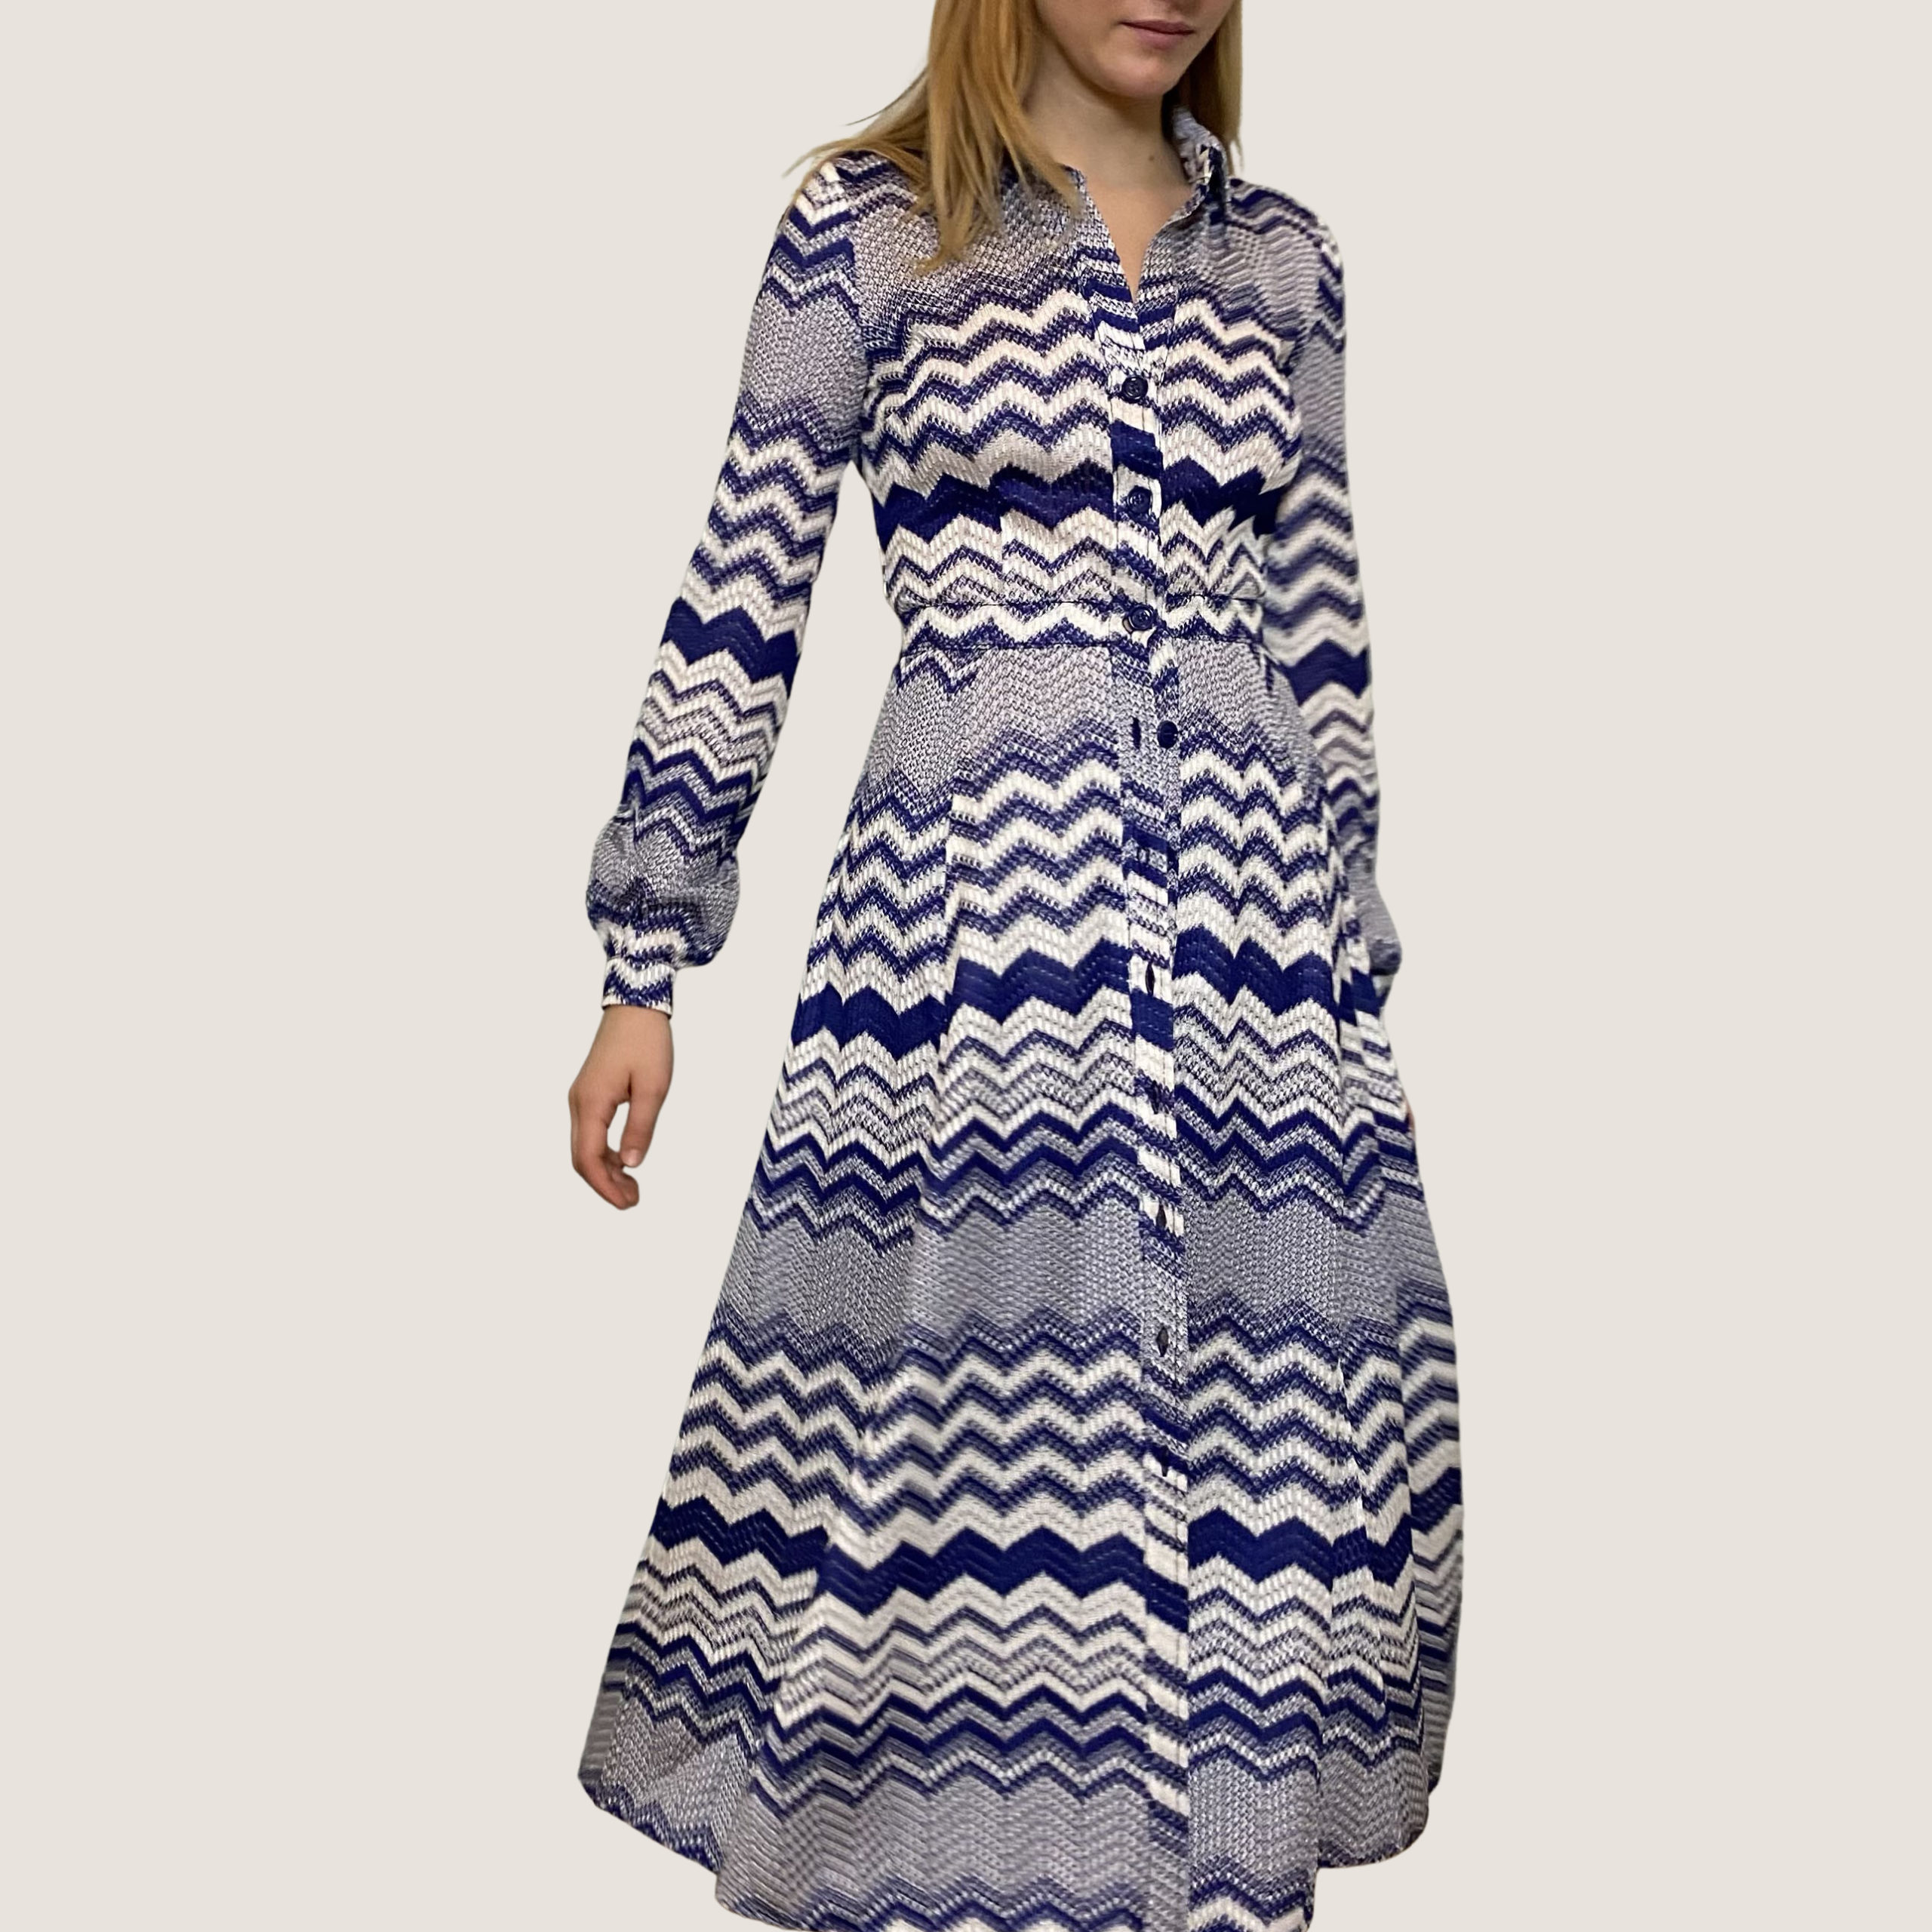 Zig-Zag Violet Dress